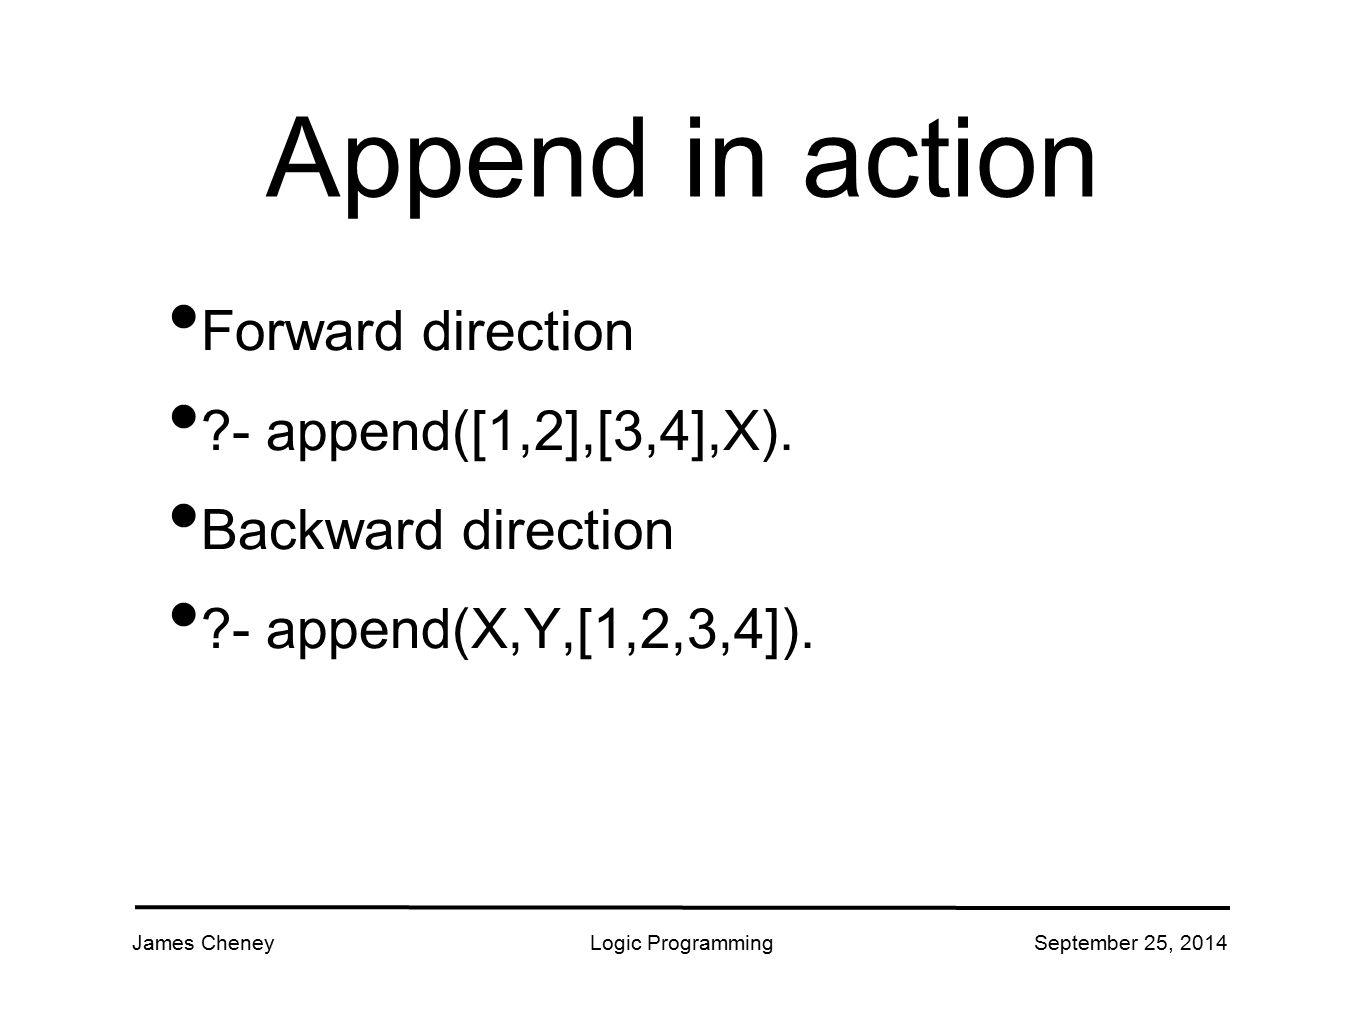 James CheneyLogic ProgrammingSeptember 25, 2014 Append in action Forward direction ?- append([1,2],[3,4],X). Backward direction ?- append(X,Y,[1,2,3,4